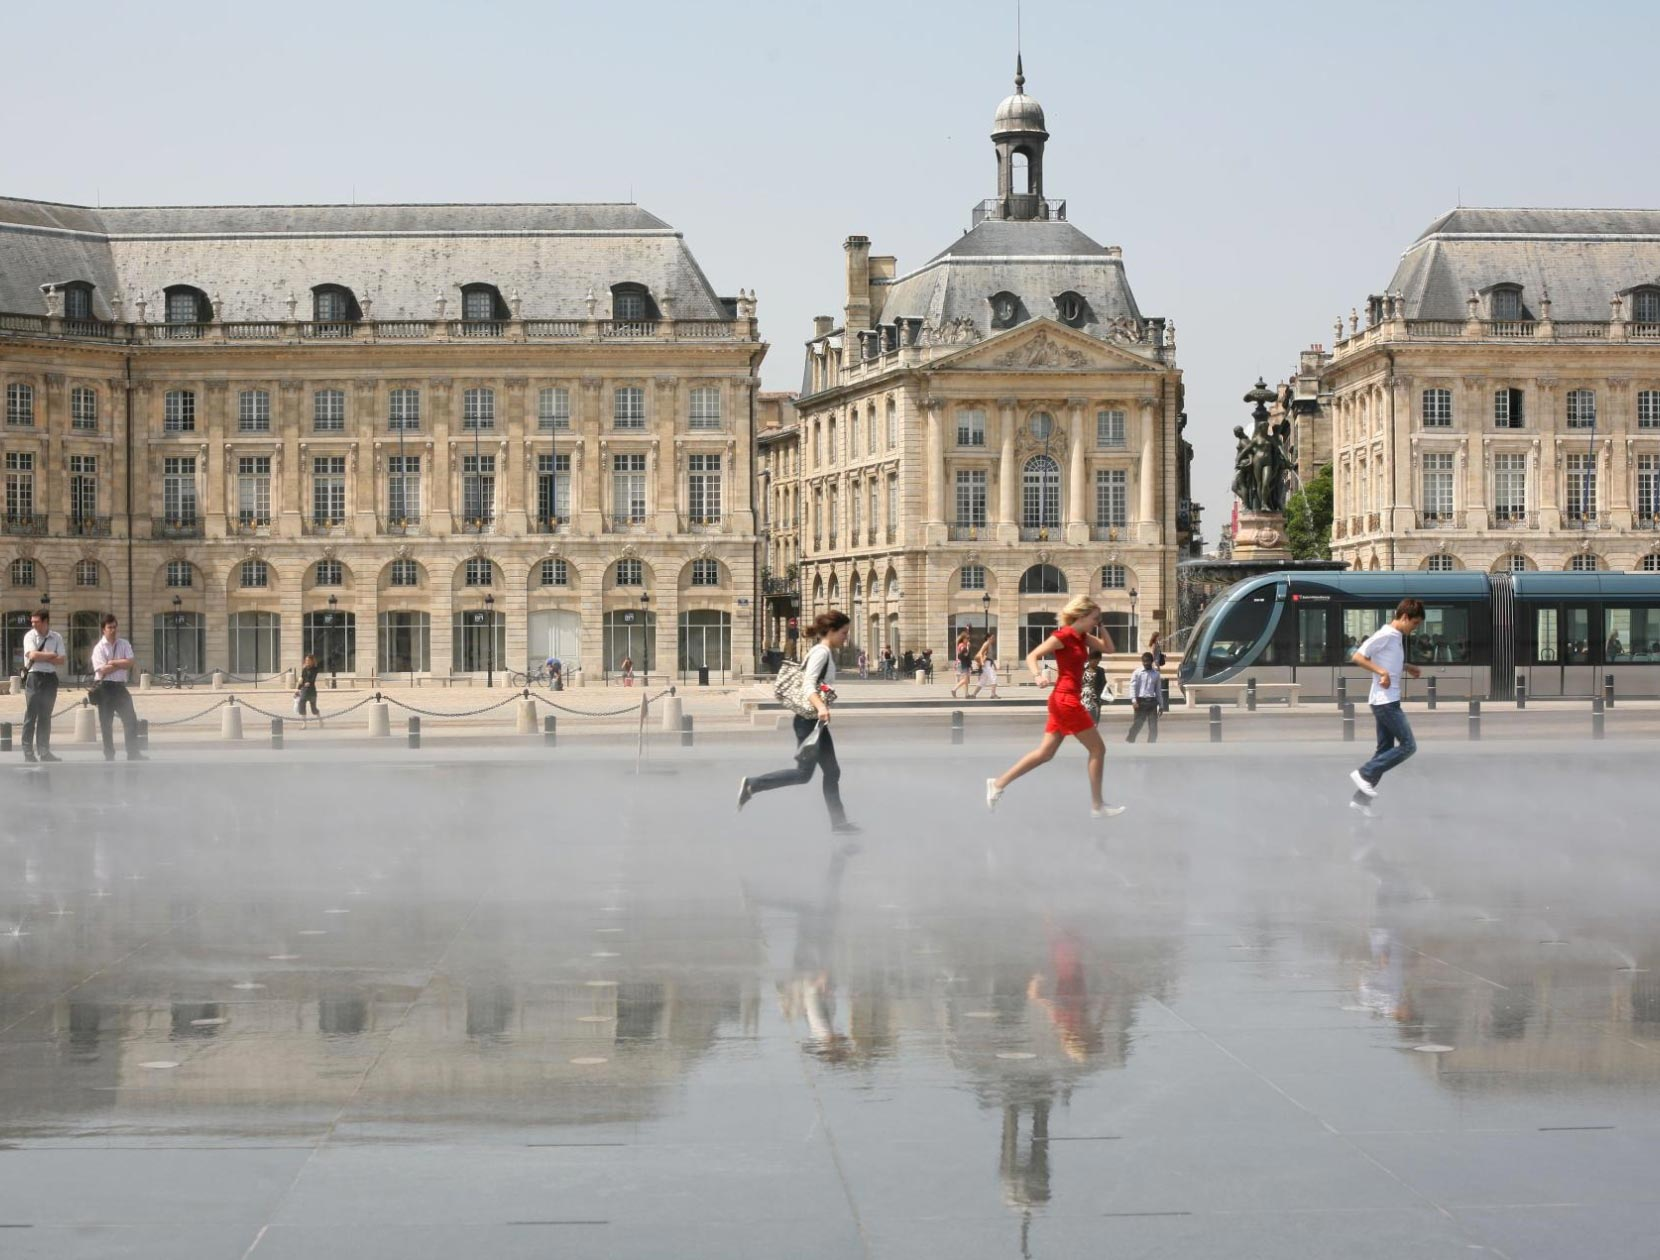 Bordeaux place de la bourse - Positon strategique | Invest in Pau Pyrénées